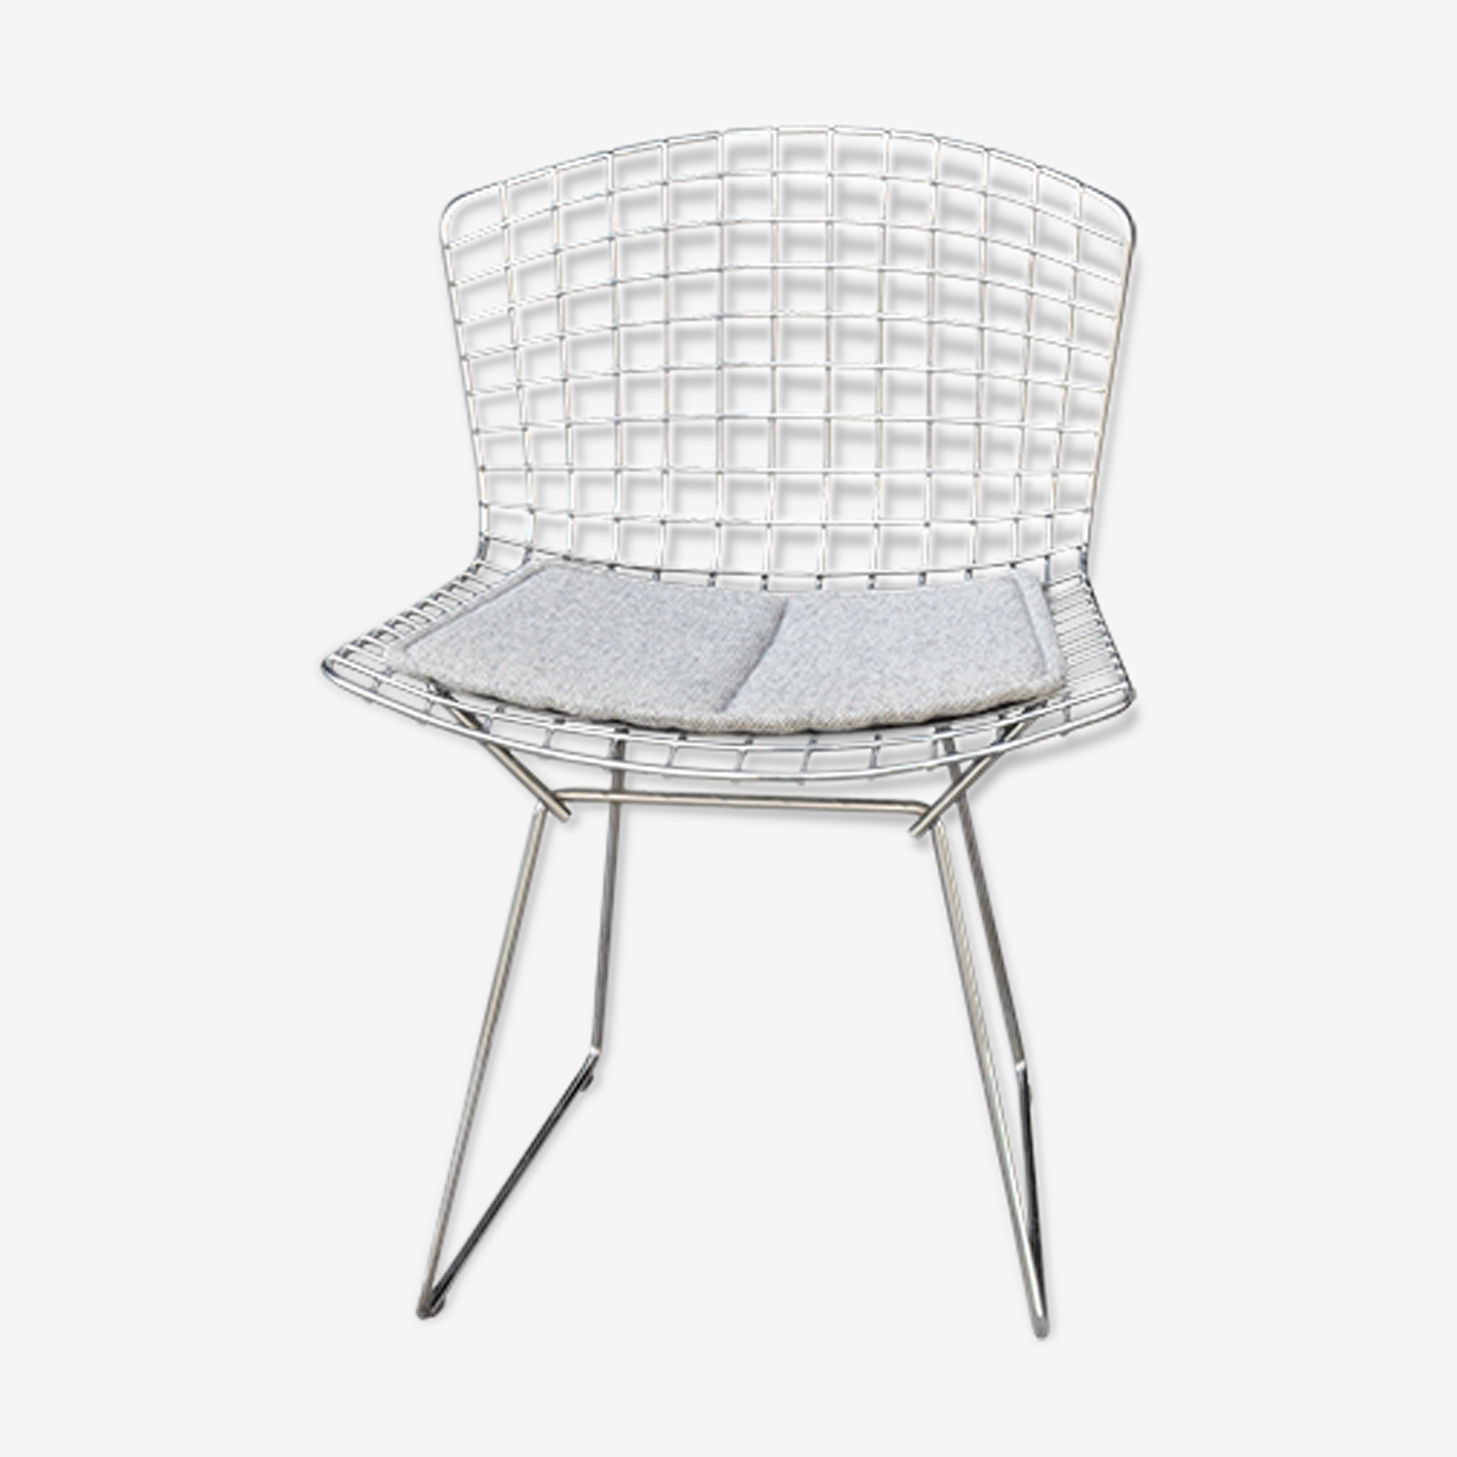 Chair by Harry Bertoia for Knoll